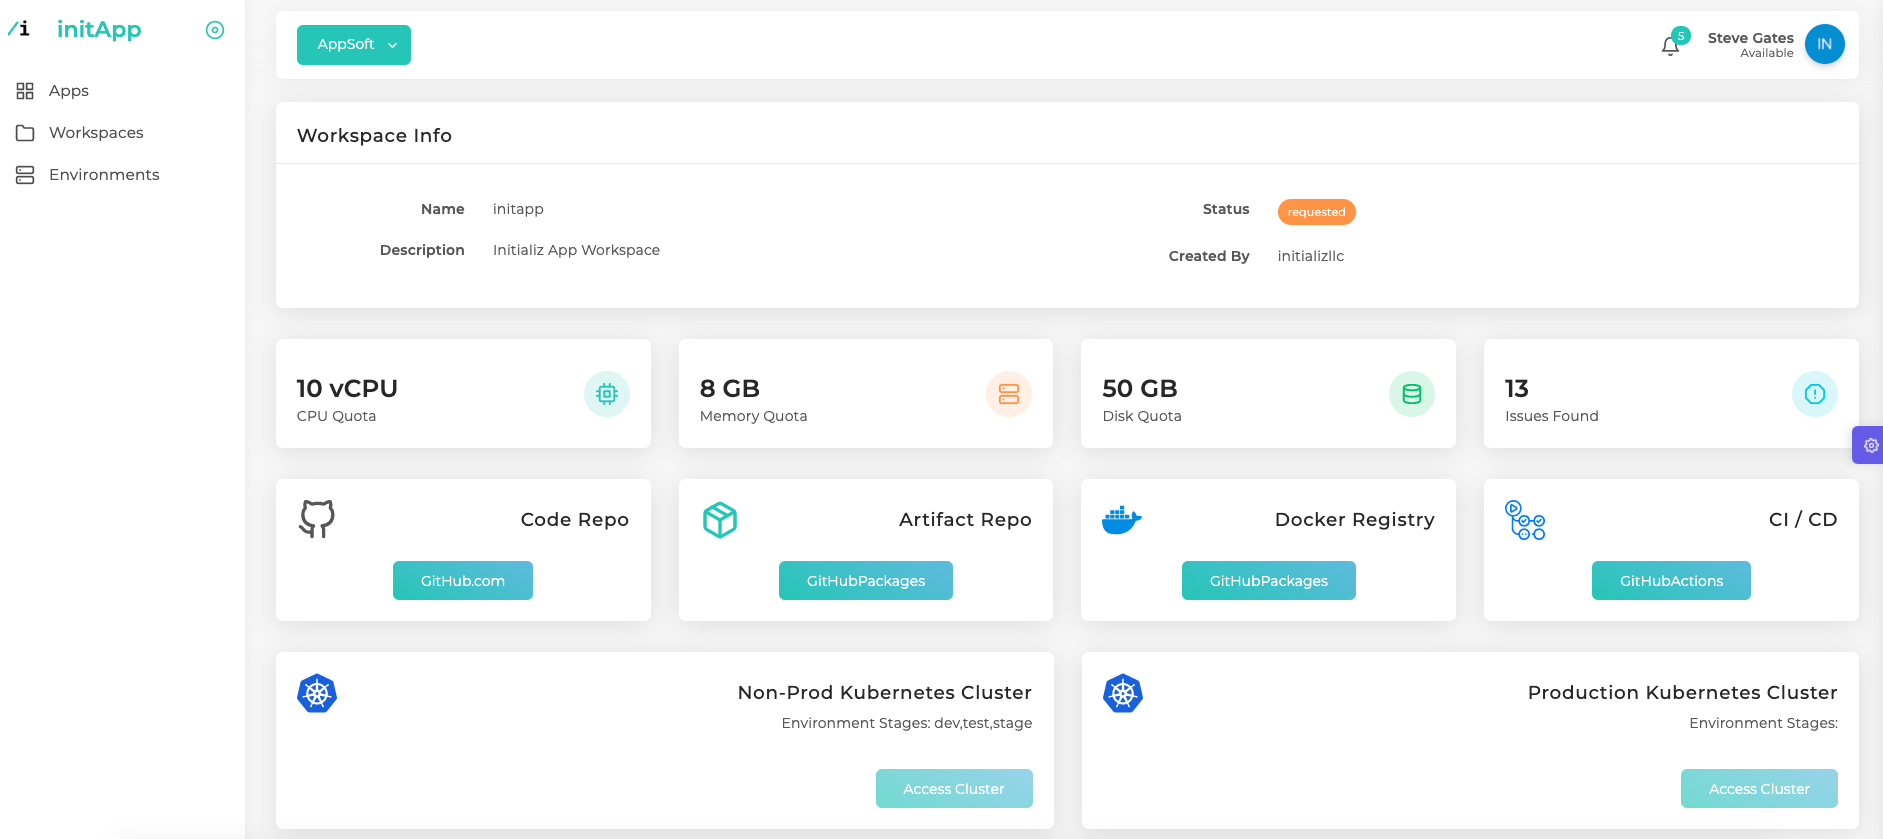 A Continuous Development Platform to Bootstrap Dev, Sec, Ops and Cloud for your Apps